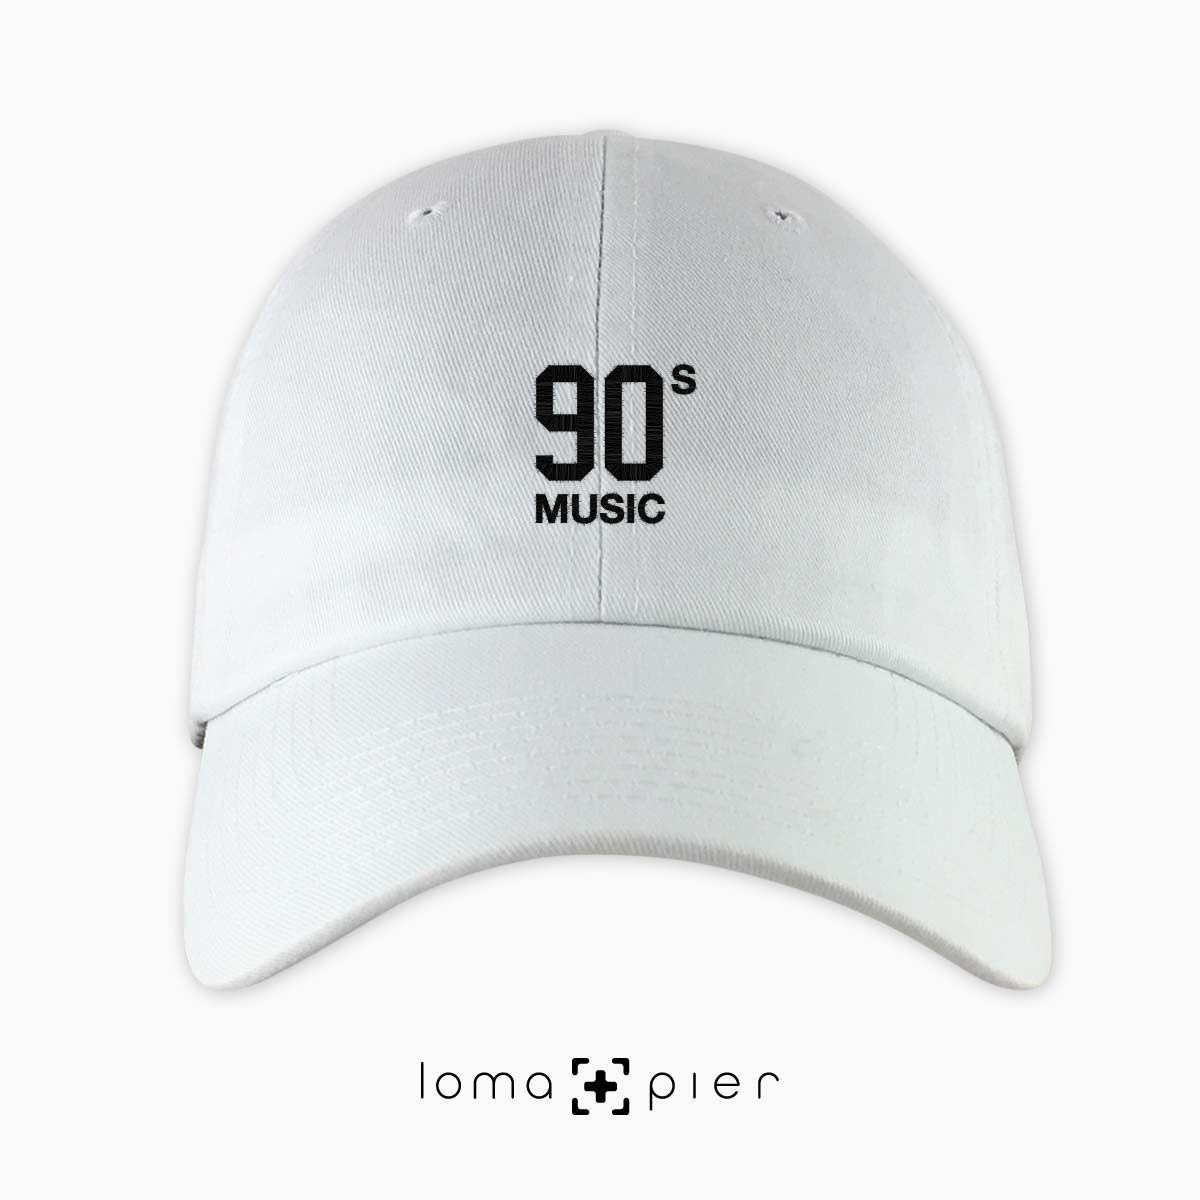 90's MUSIC typography embroidered on a white unstructured dad hat with black thread by loma+pier hat store made in the USA